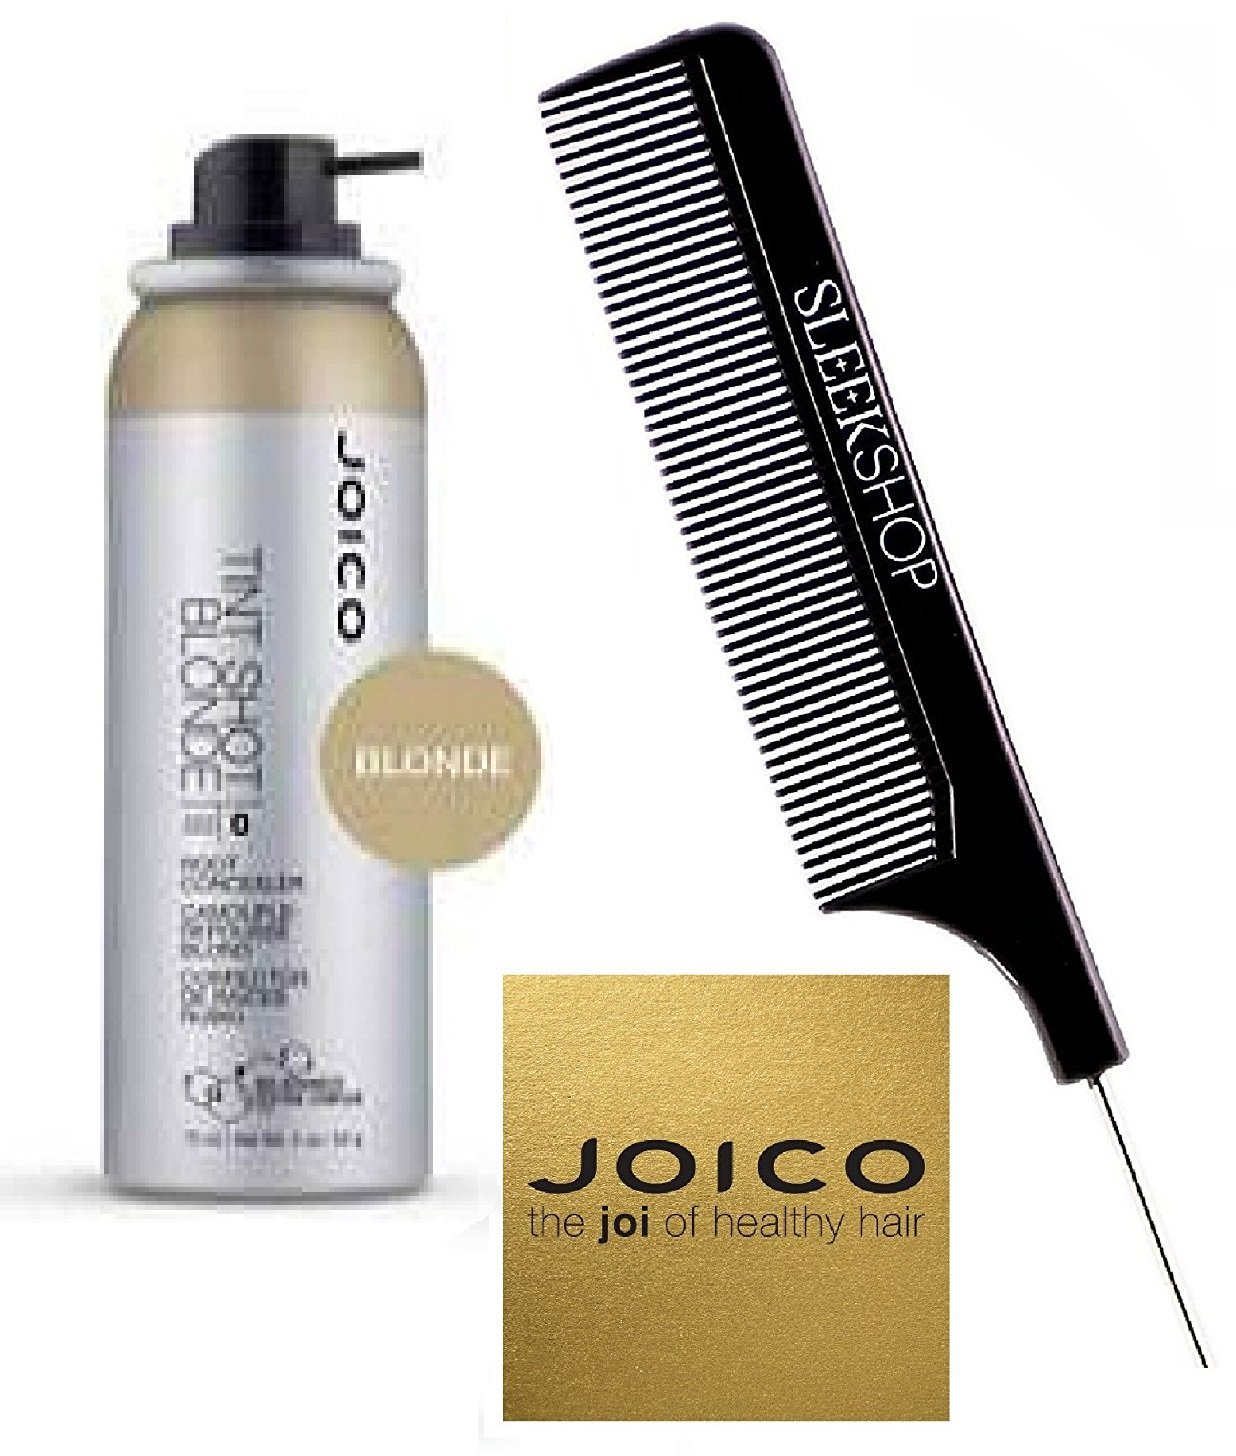 Joico TINT SHOT Root Concealer, Bio-Advanced Peptide Complex (with Sleek Steel Pin Tail Comb) (Blonde , 2 oz)